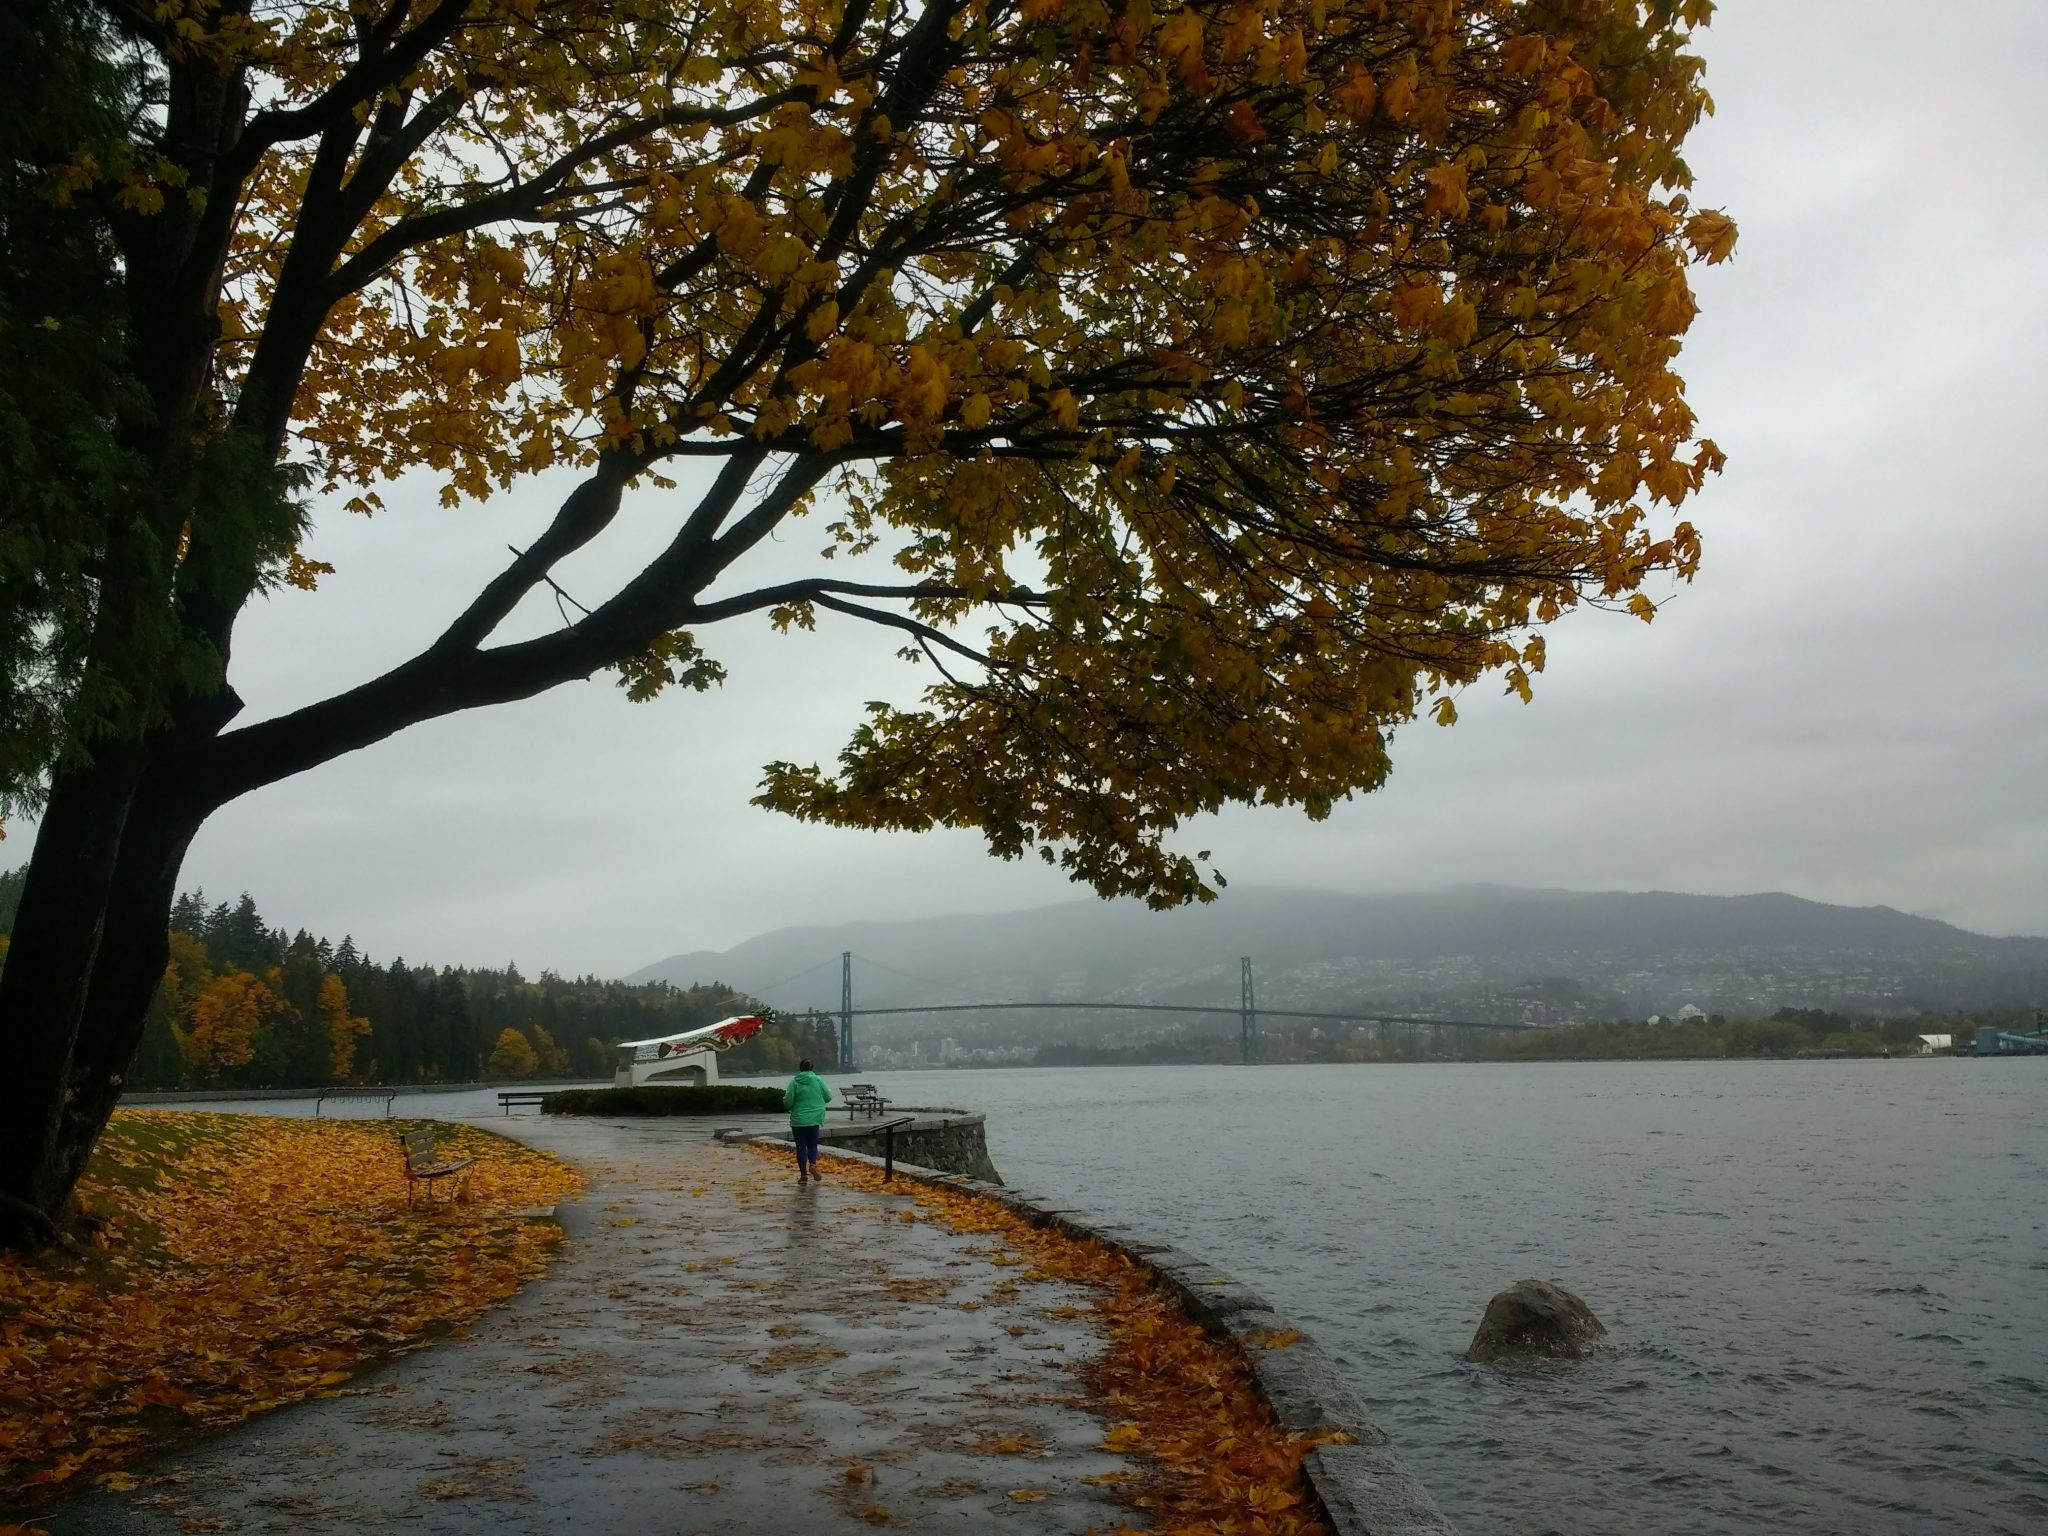 A paved trail along the water under a tree with yellow fall leaves. Many of the trees leaves are already on the ground. It's foggy and raining and a suspension bridge is visible in the distance